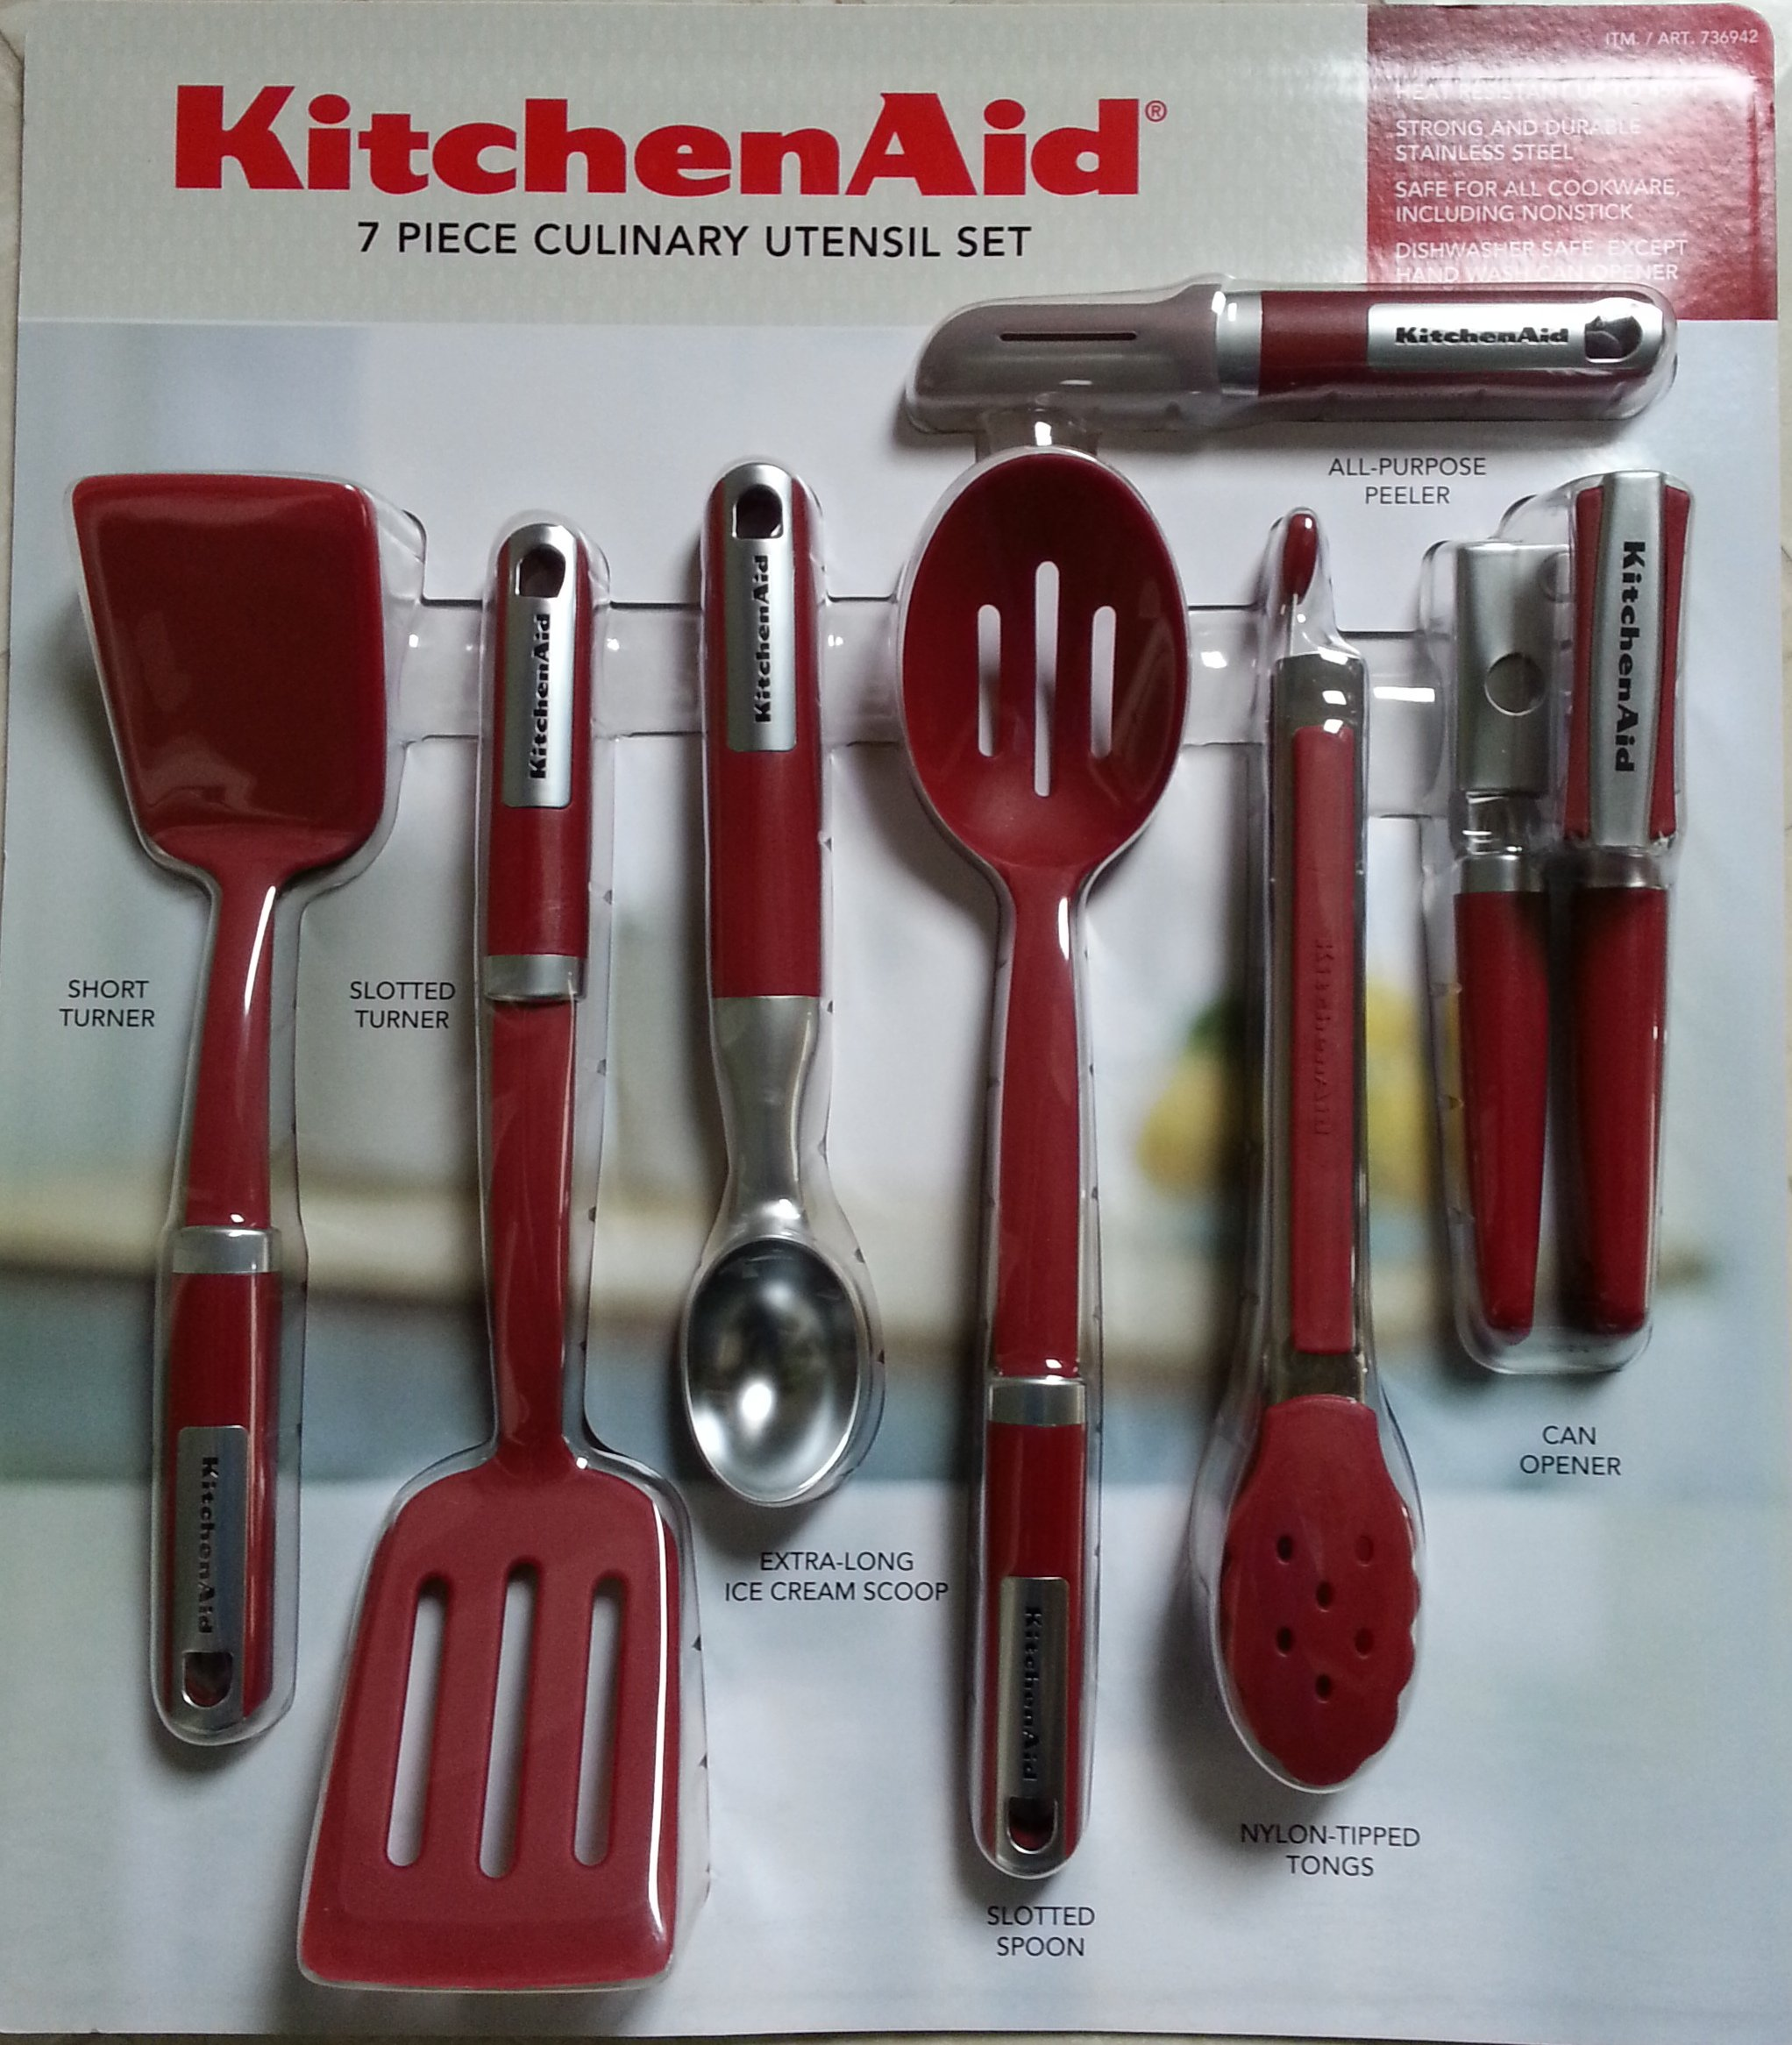 Kitchenaid cook 39 s 7 piece culinary utensil set red red for Kitchenaid 6 set